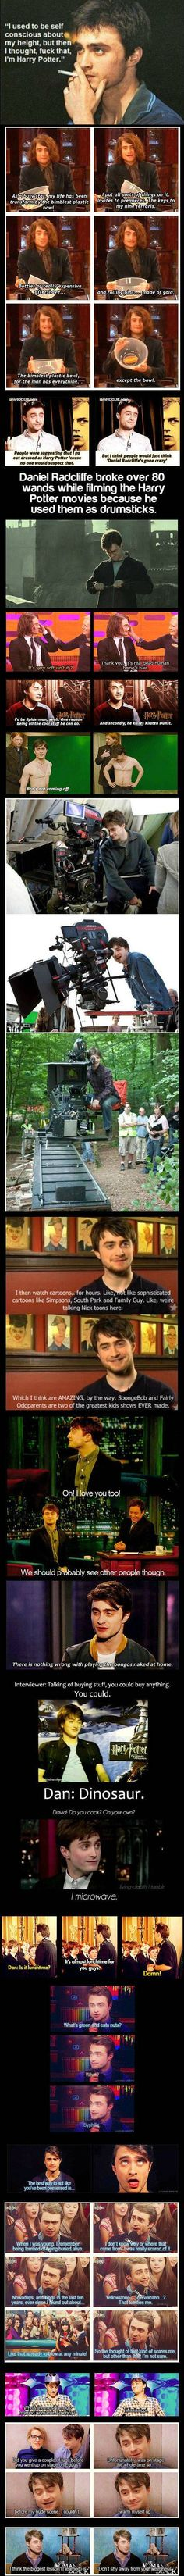 Daniel Radcliffe is the male Jennifer Lawrence<-- pinning for the incredible reality that is that comment